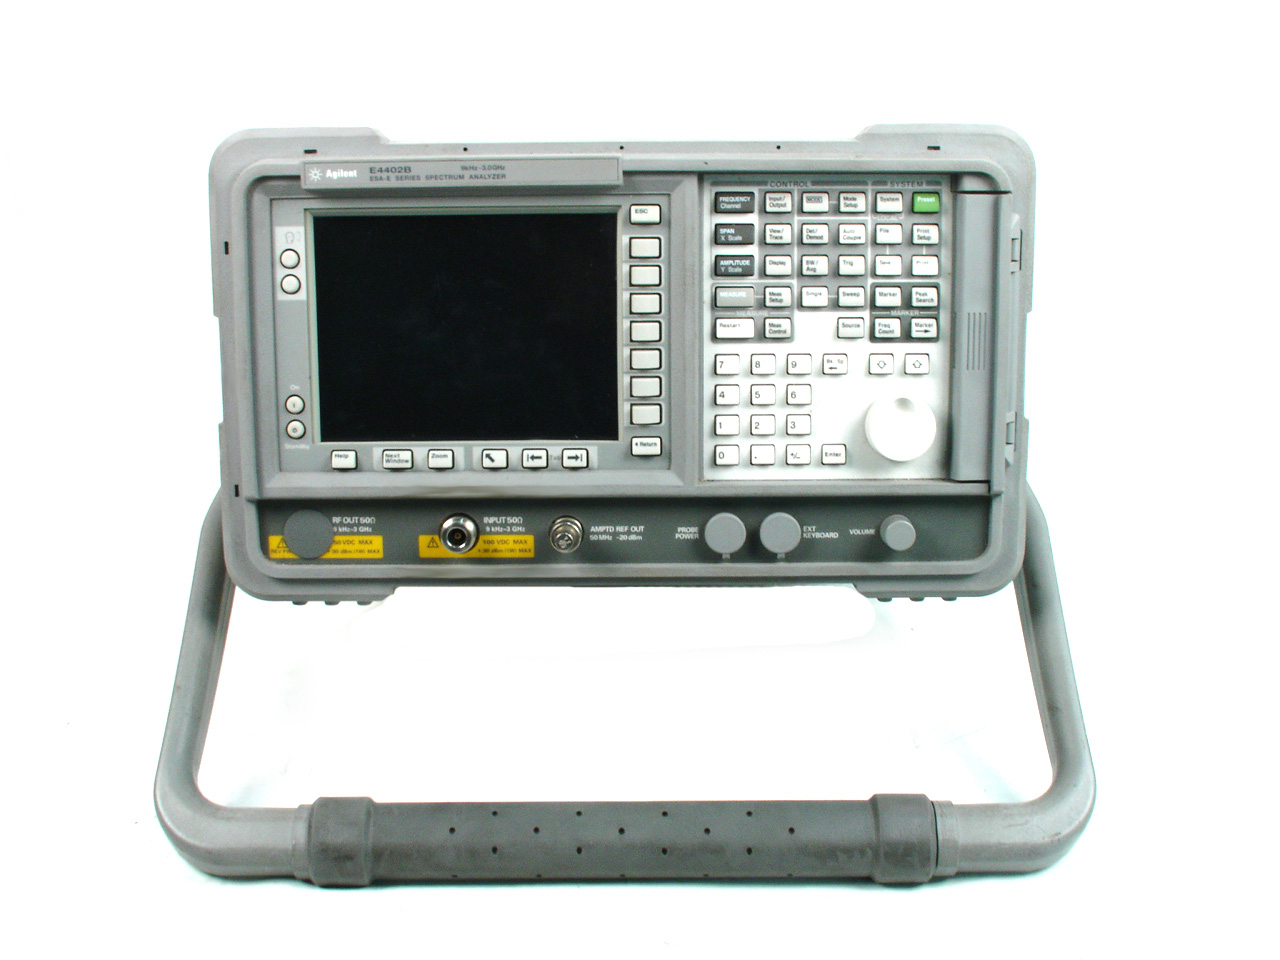 Agilent / Keysight E4402B for sale